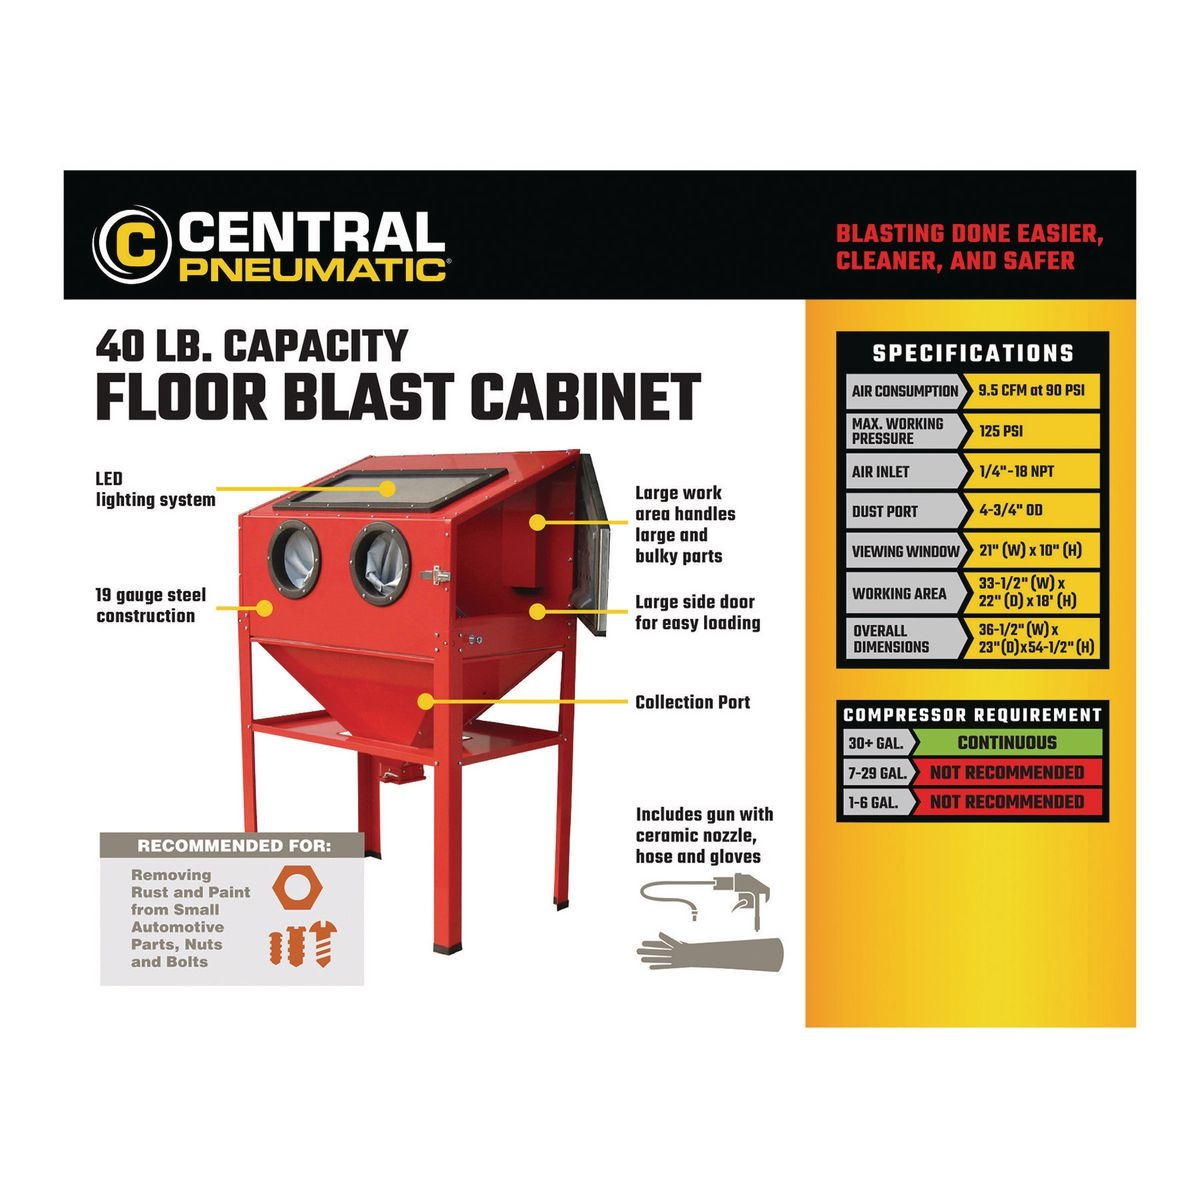 Harbor Freight Abrasive Blast Cabinet Review | Taraba Home Review